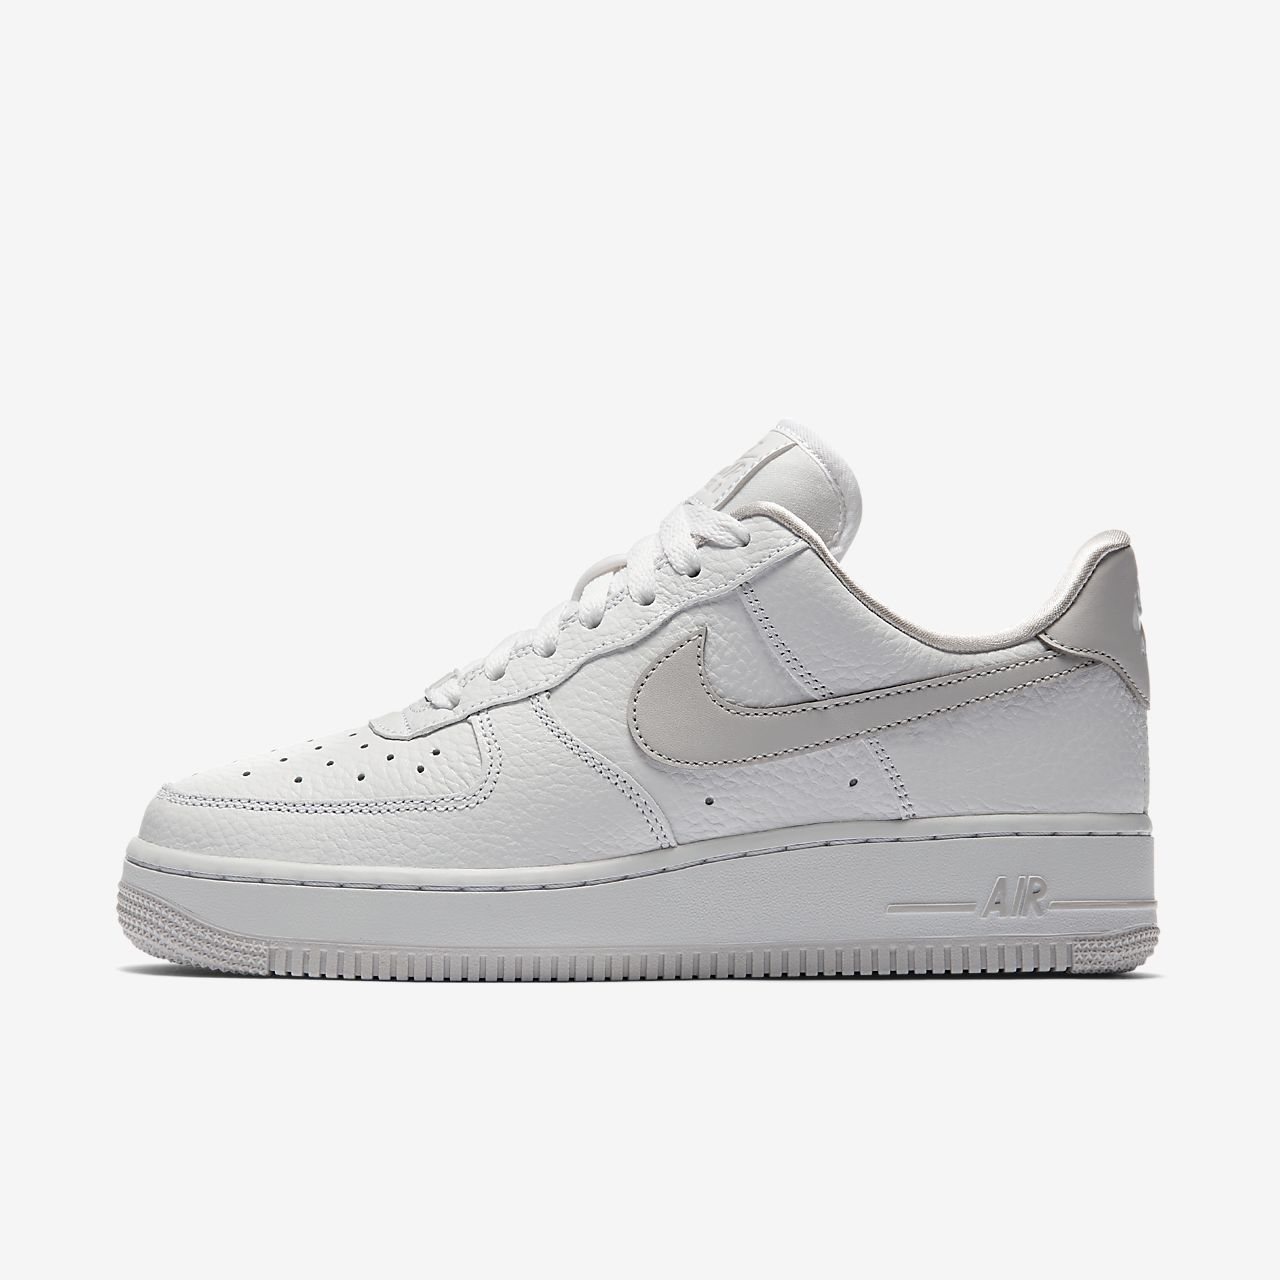 Chaussures Nike Air Force 1 noires Casual homme yU4uV